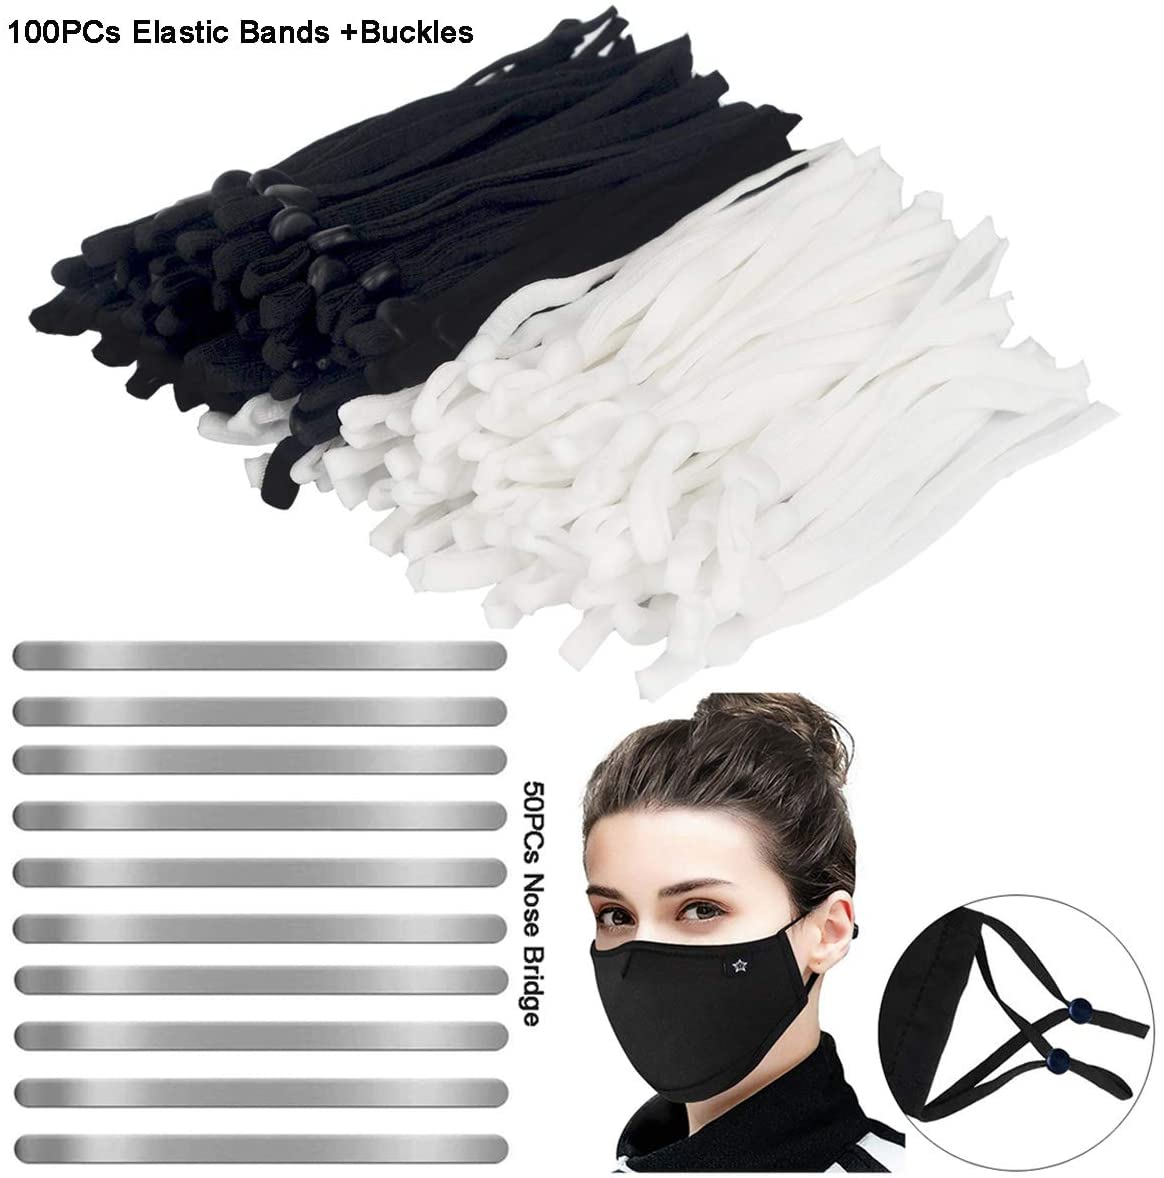 Mask Making Supplies Set, 100 Pieces Elastic Band Cord with Adjustable Buckles, Stretch String Lanyard Rope, 50 Pieces Nose Bridge Strips, Aluminum Metal Flat Wire Strip for Mask Making Accessories